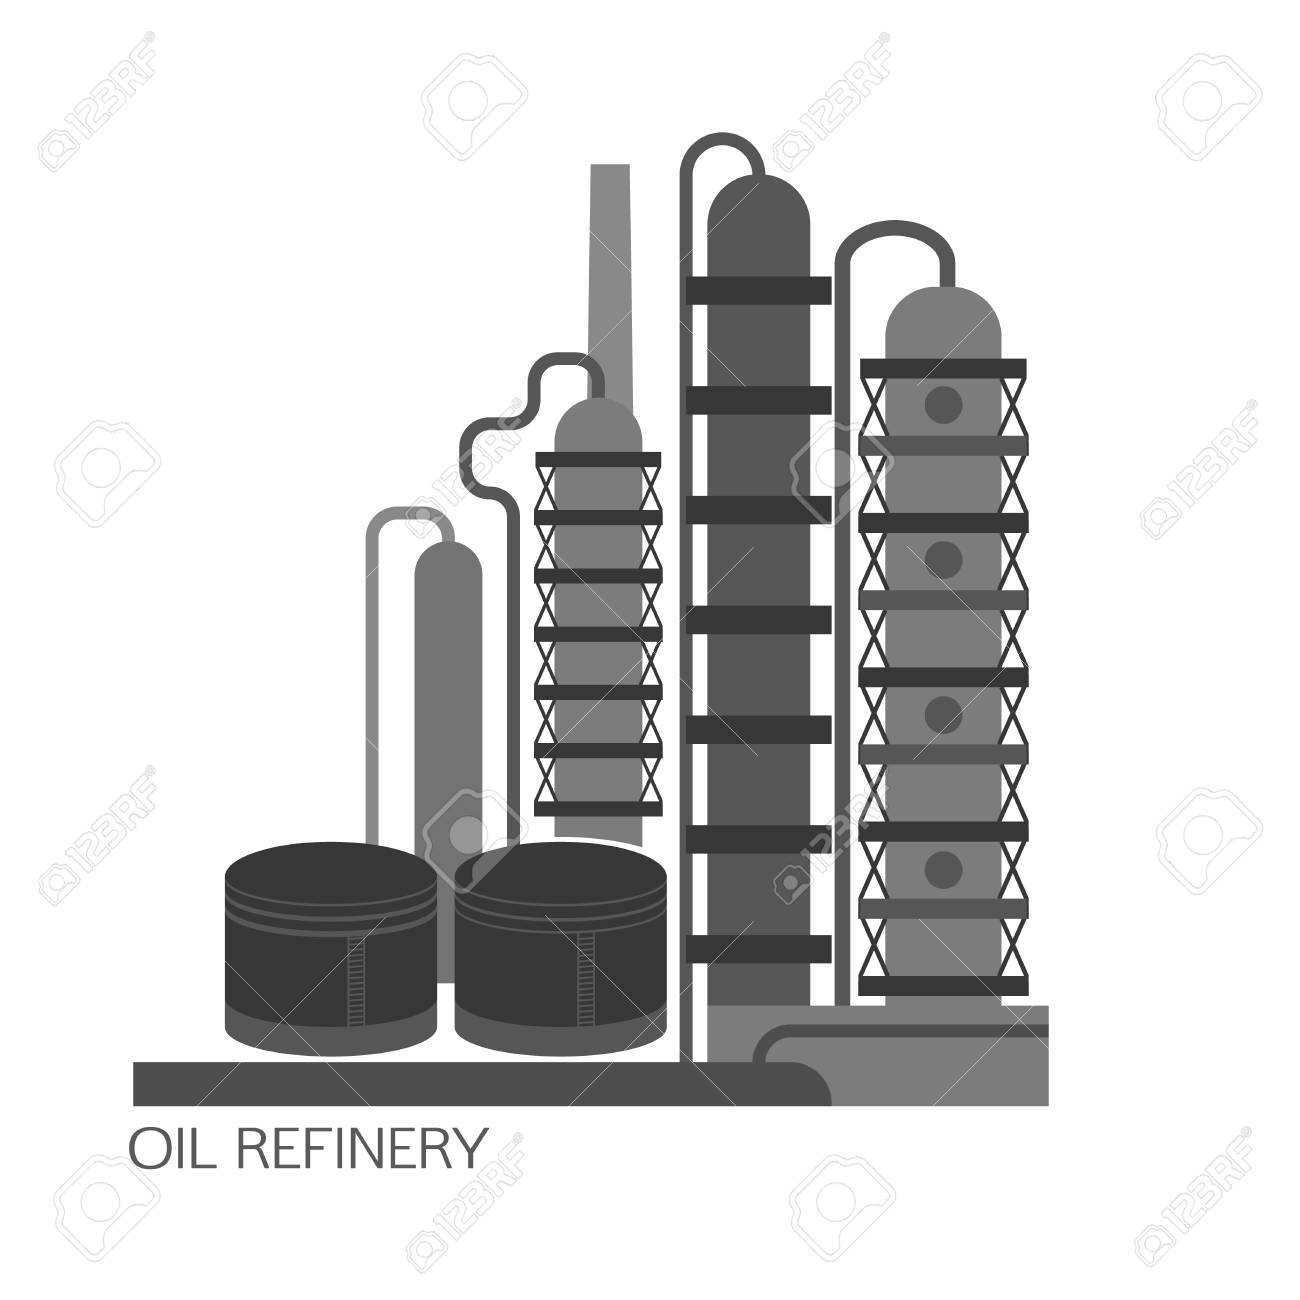 Oil refinery or chemical plant image. Vector illustration im...